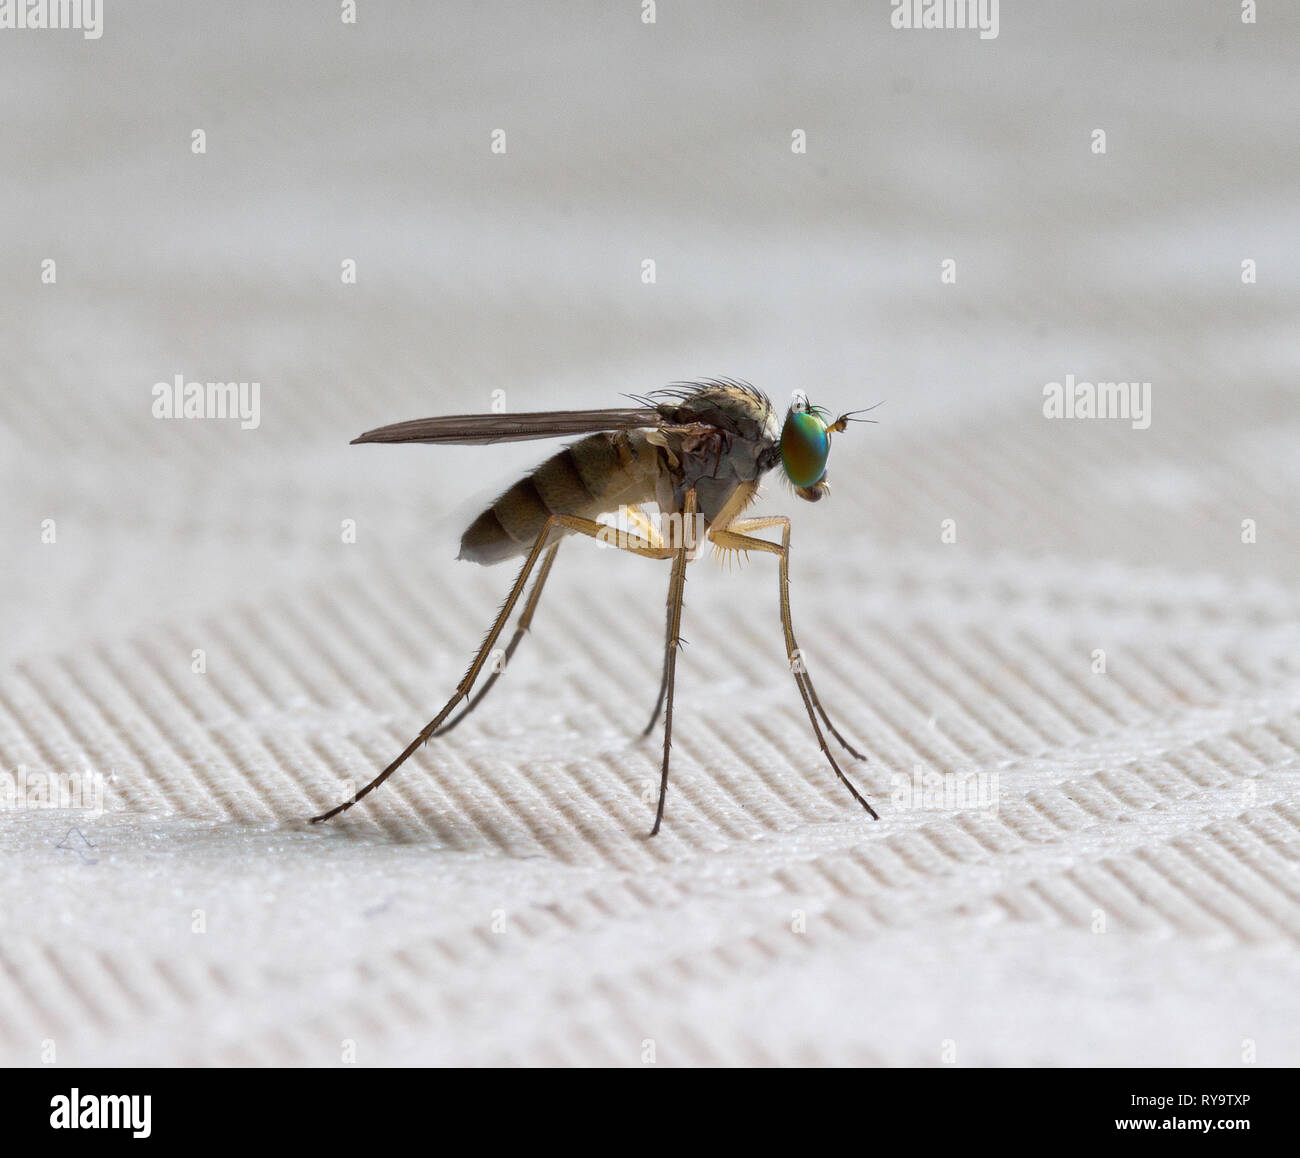 Fly.Robberfly on the table - Stock Image